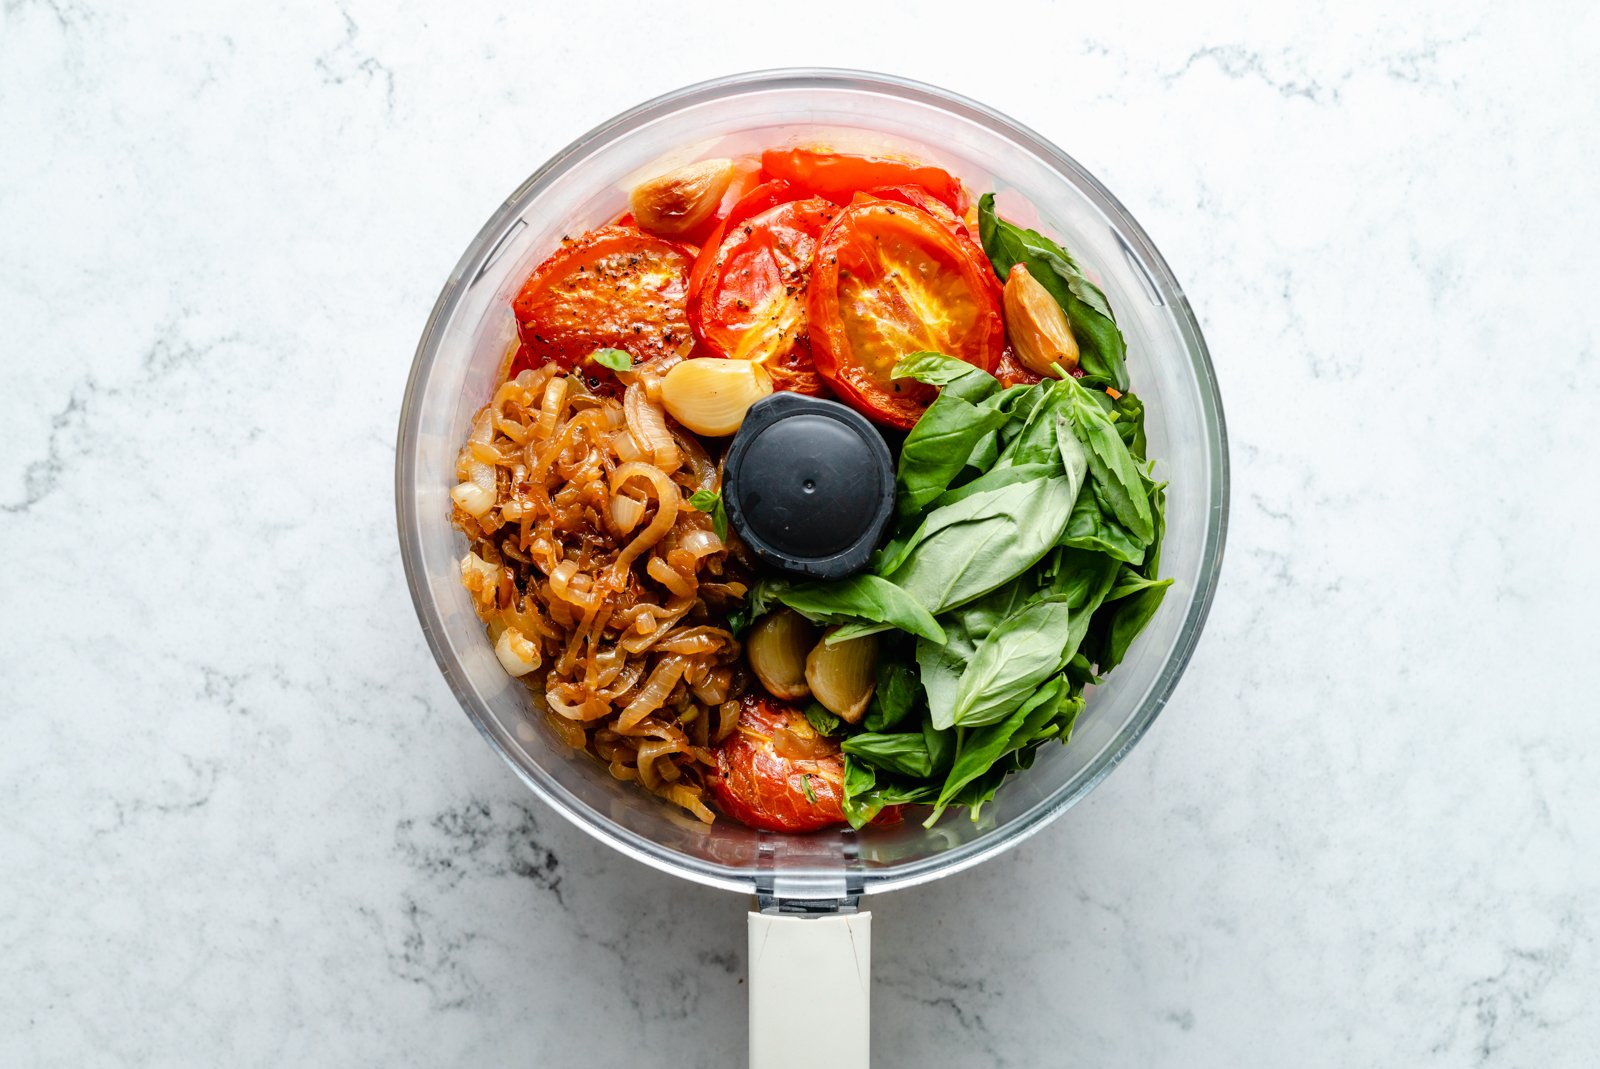 ingredients in a food processor to make a tomato sauce recipe